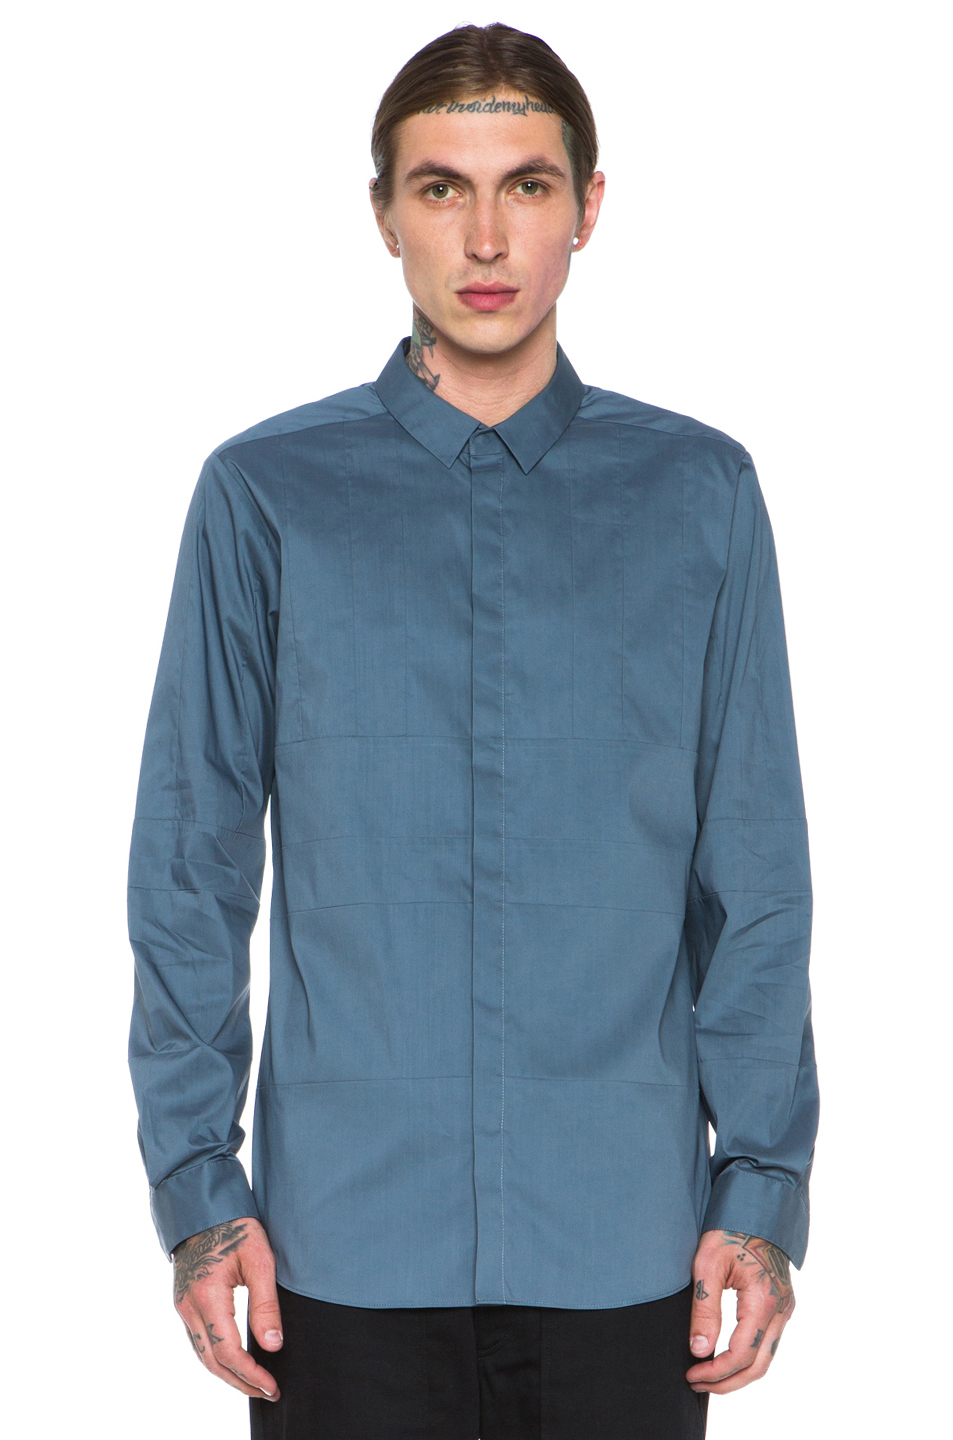 Alexander wang hidden snap closure multi seam collar shirt for Mens shirts with snaps instead of buttons